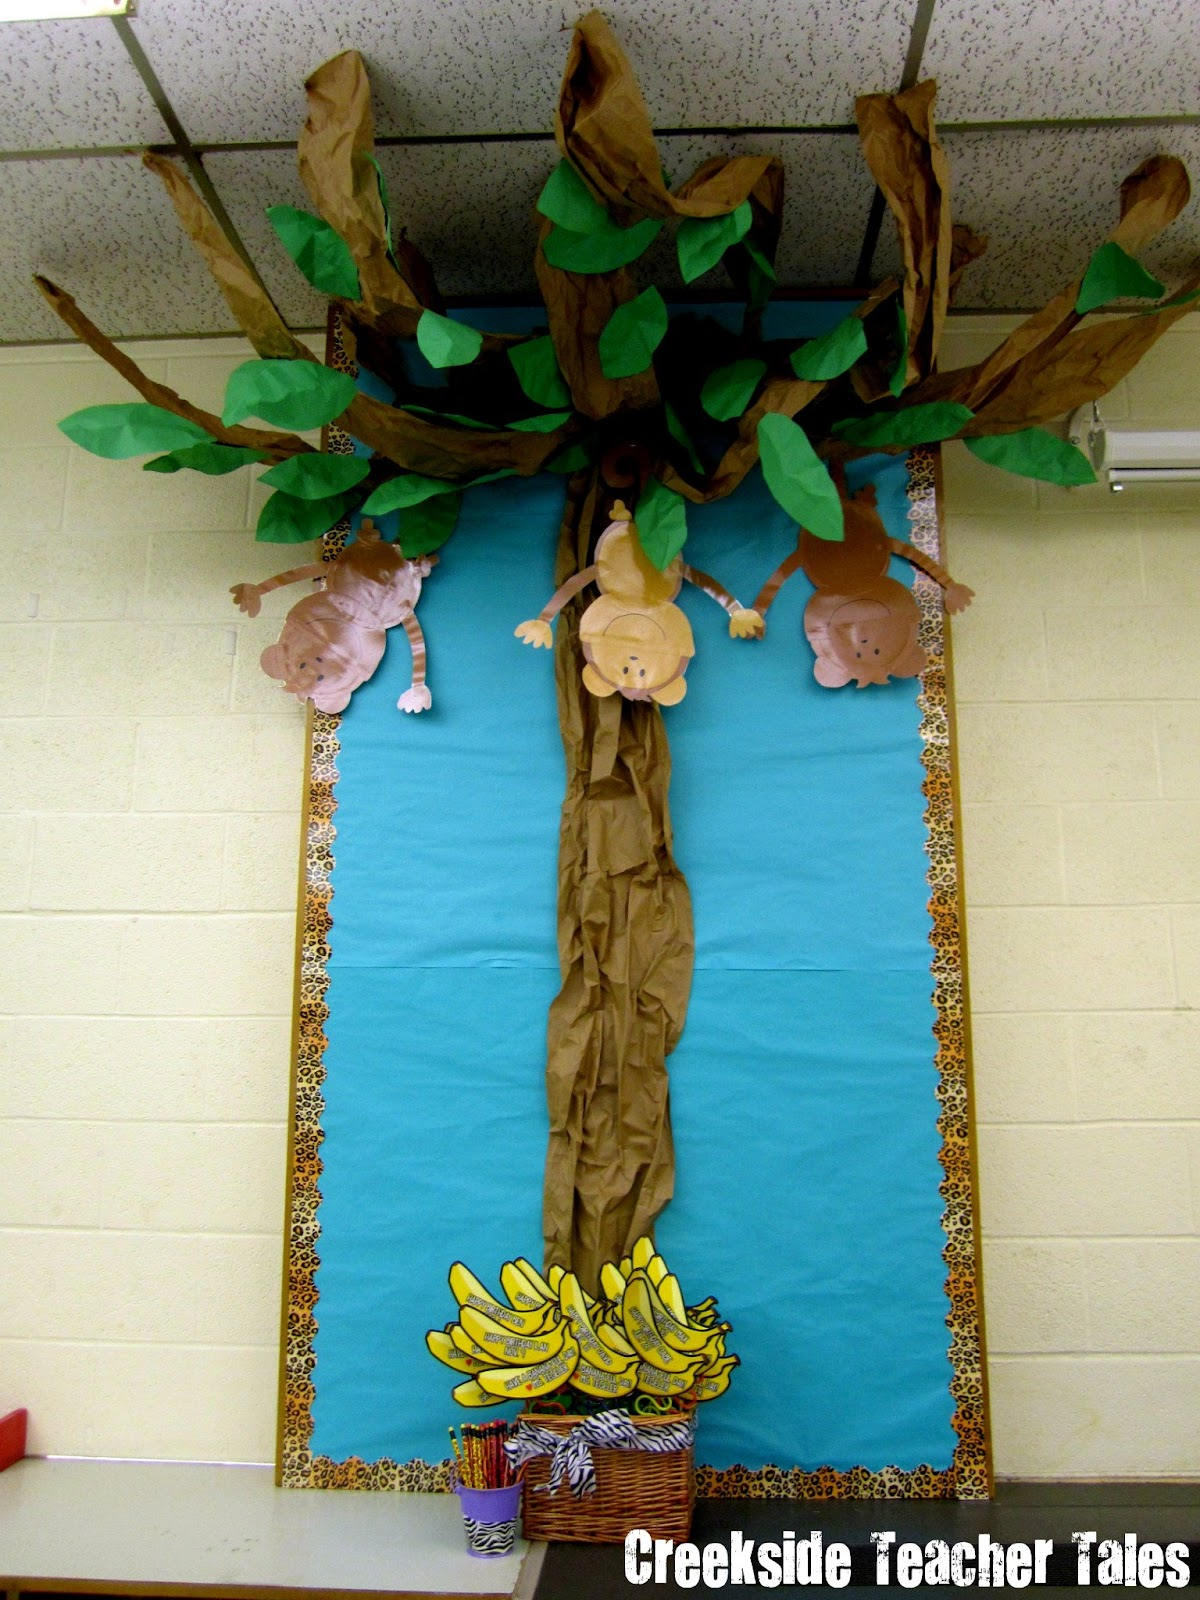 Classroom Decor Jungle ~ Freebie made it monday creekside teacher tales